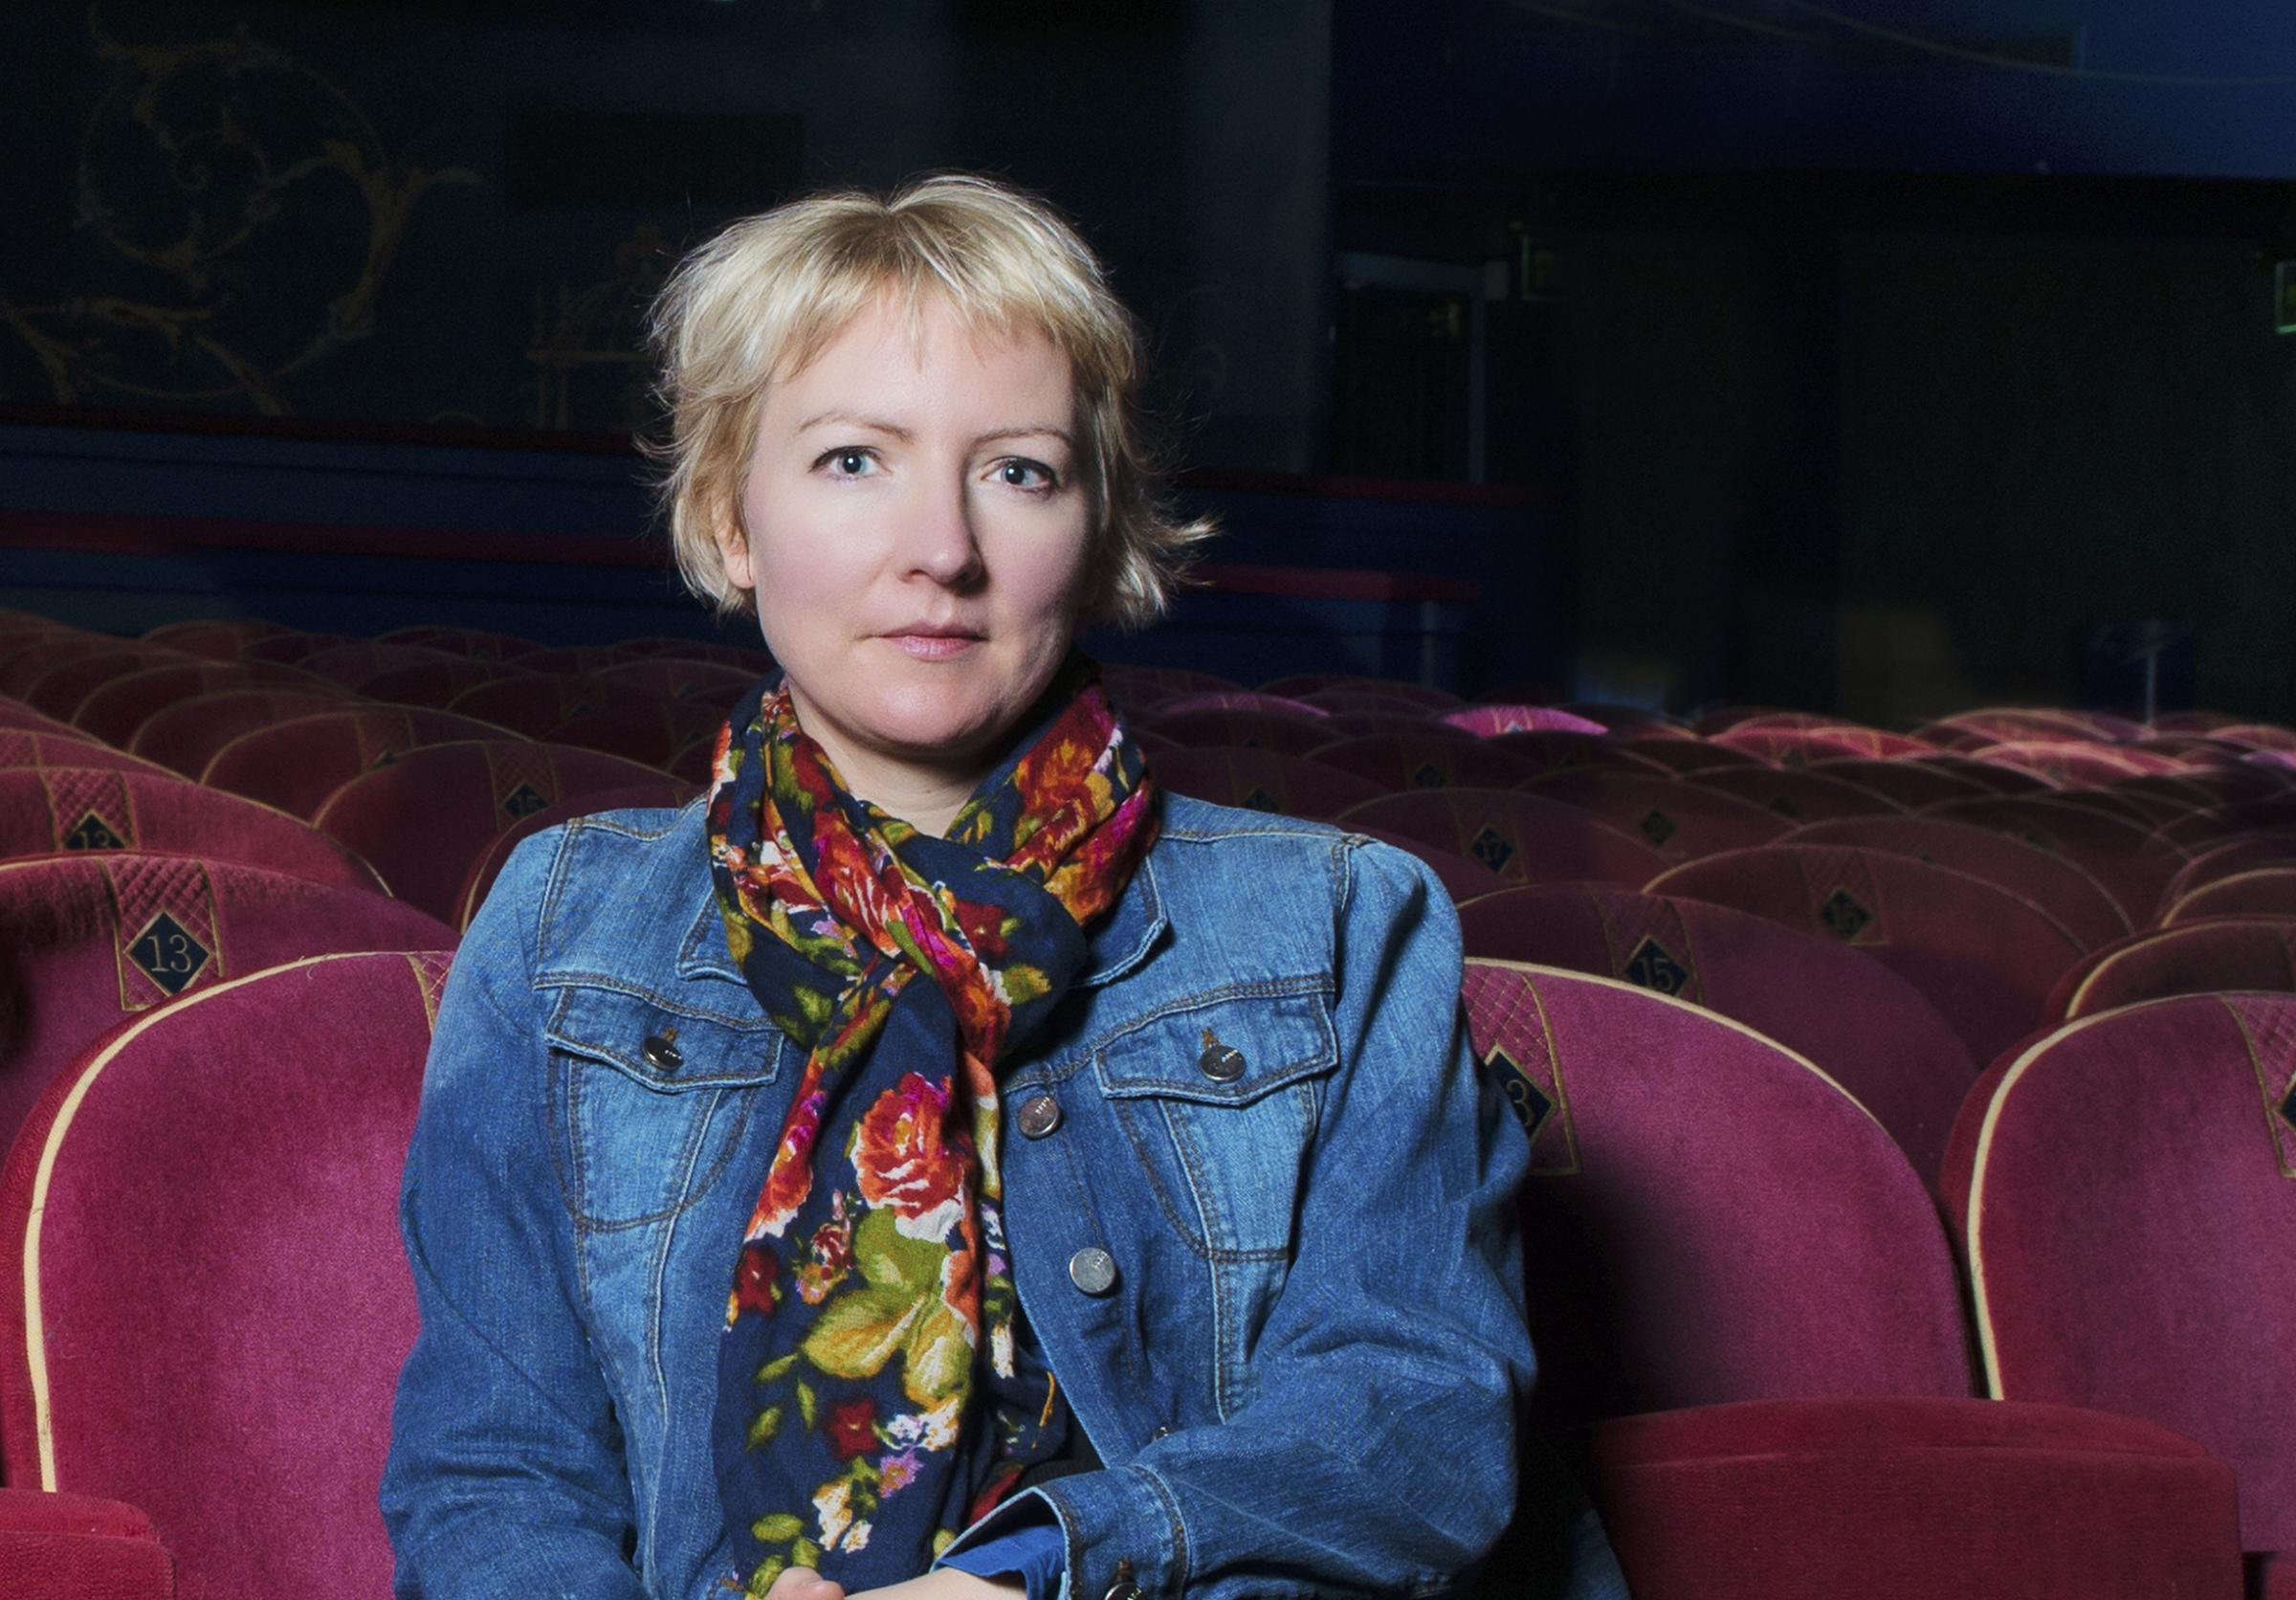 Playwright Zinne Harris makes directing debut with short film A Glimpse